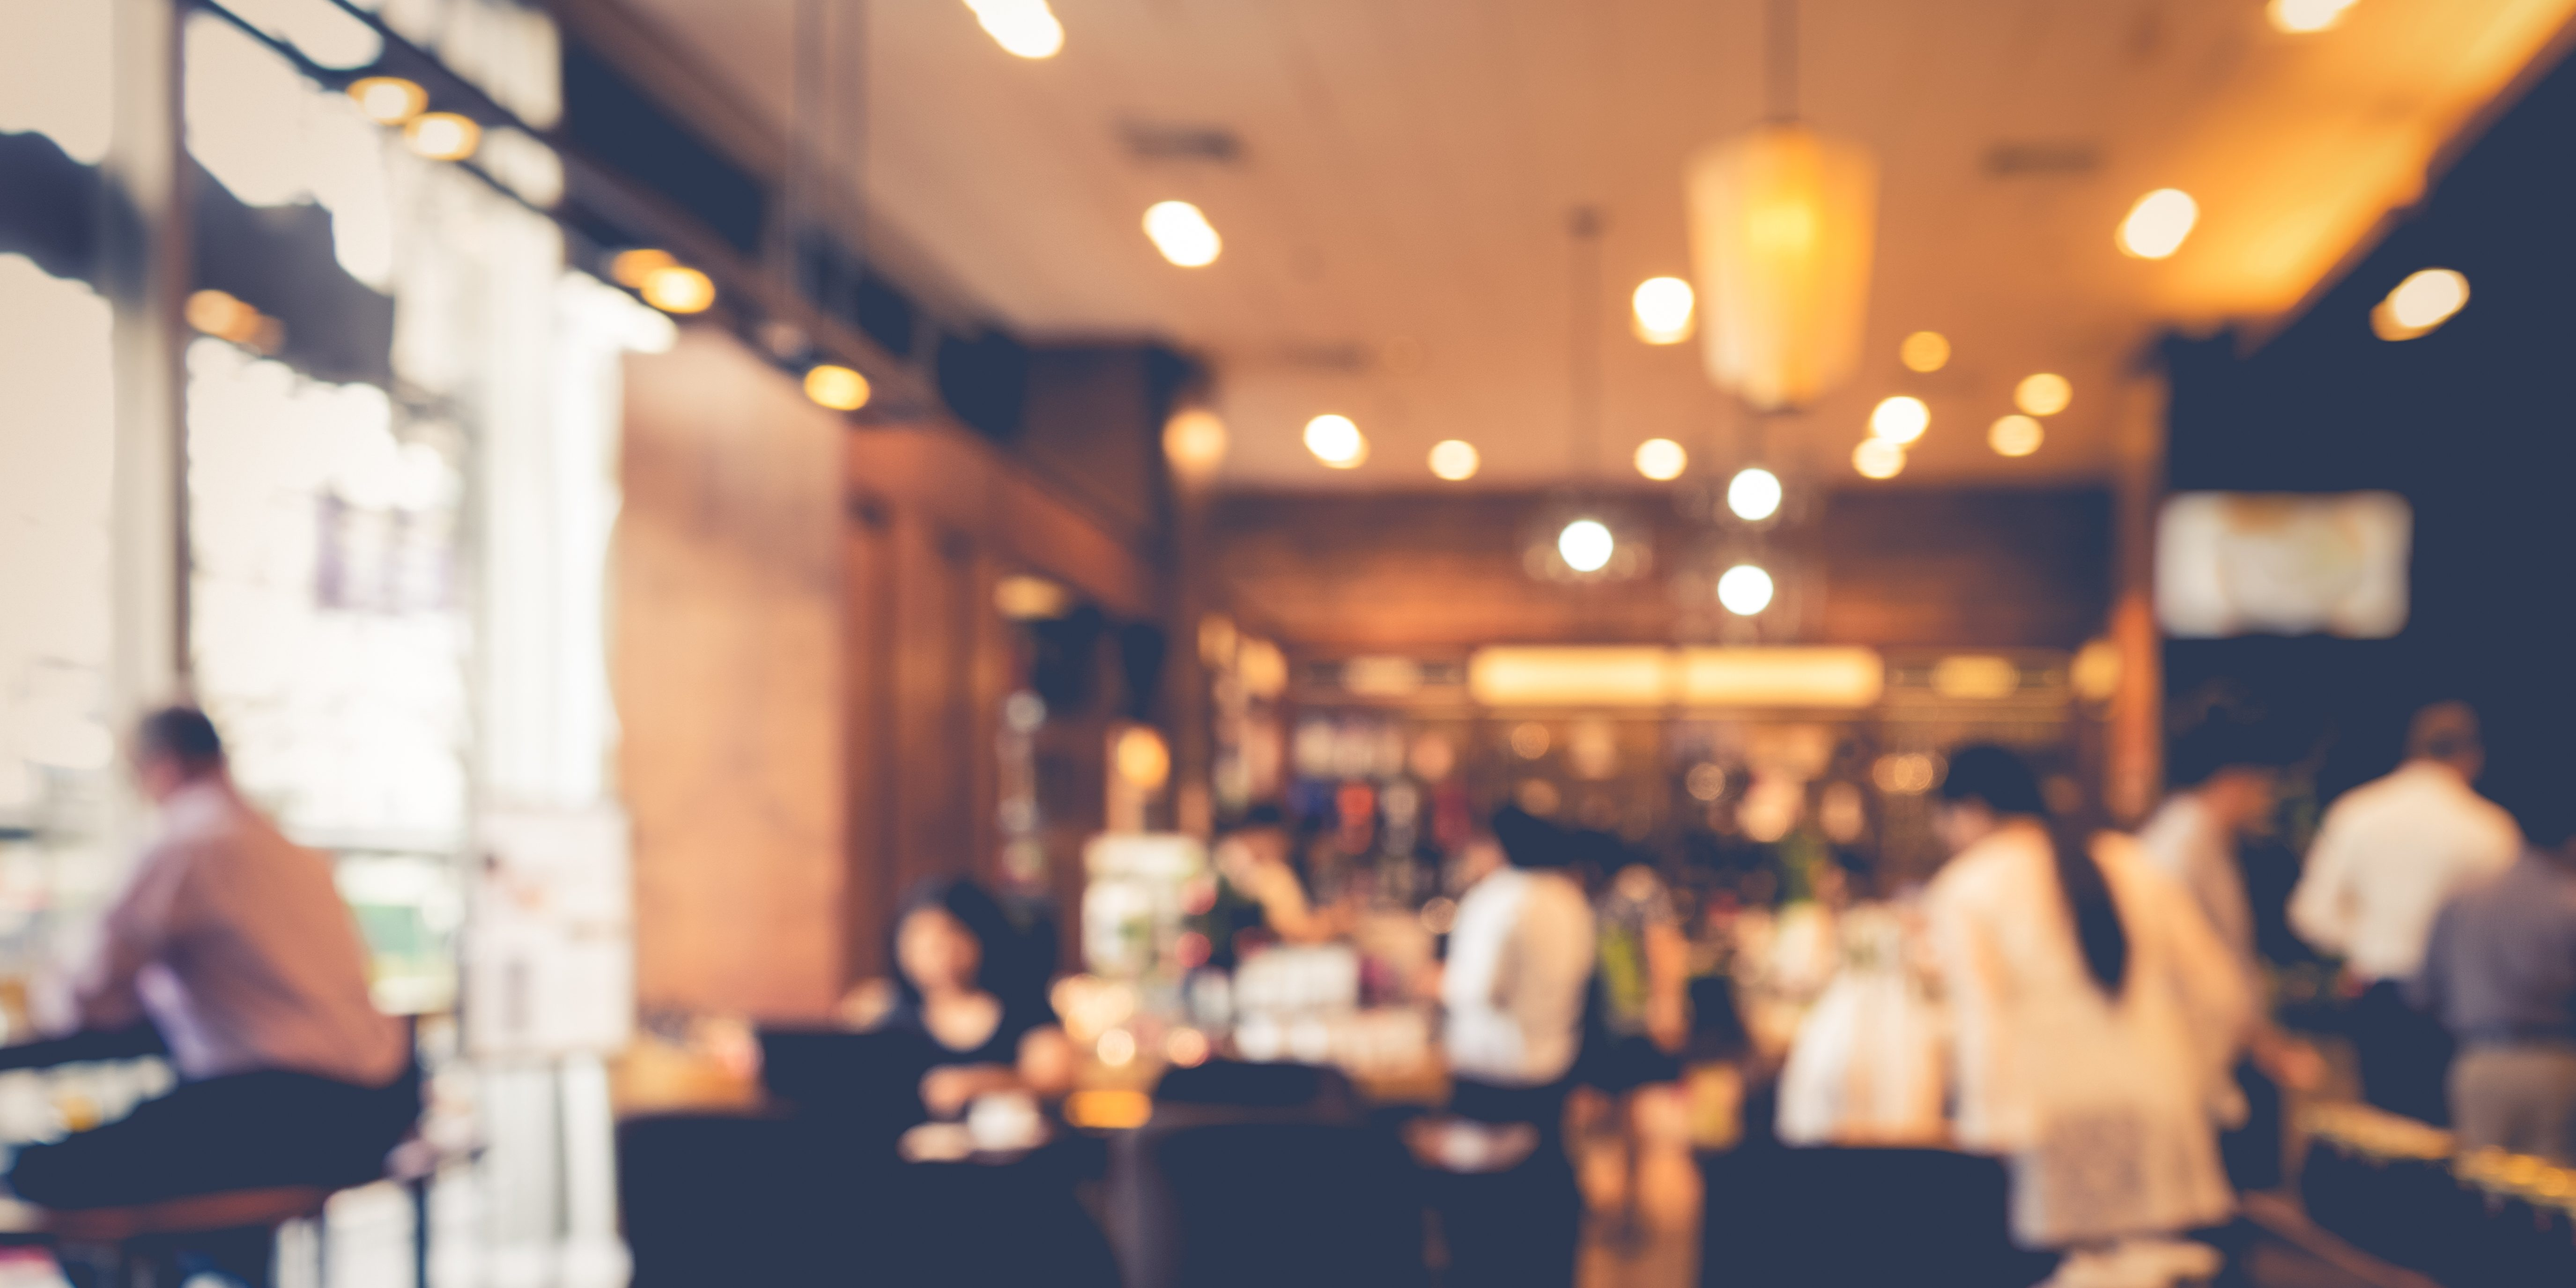 competitors in restaurant business